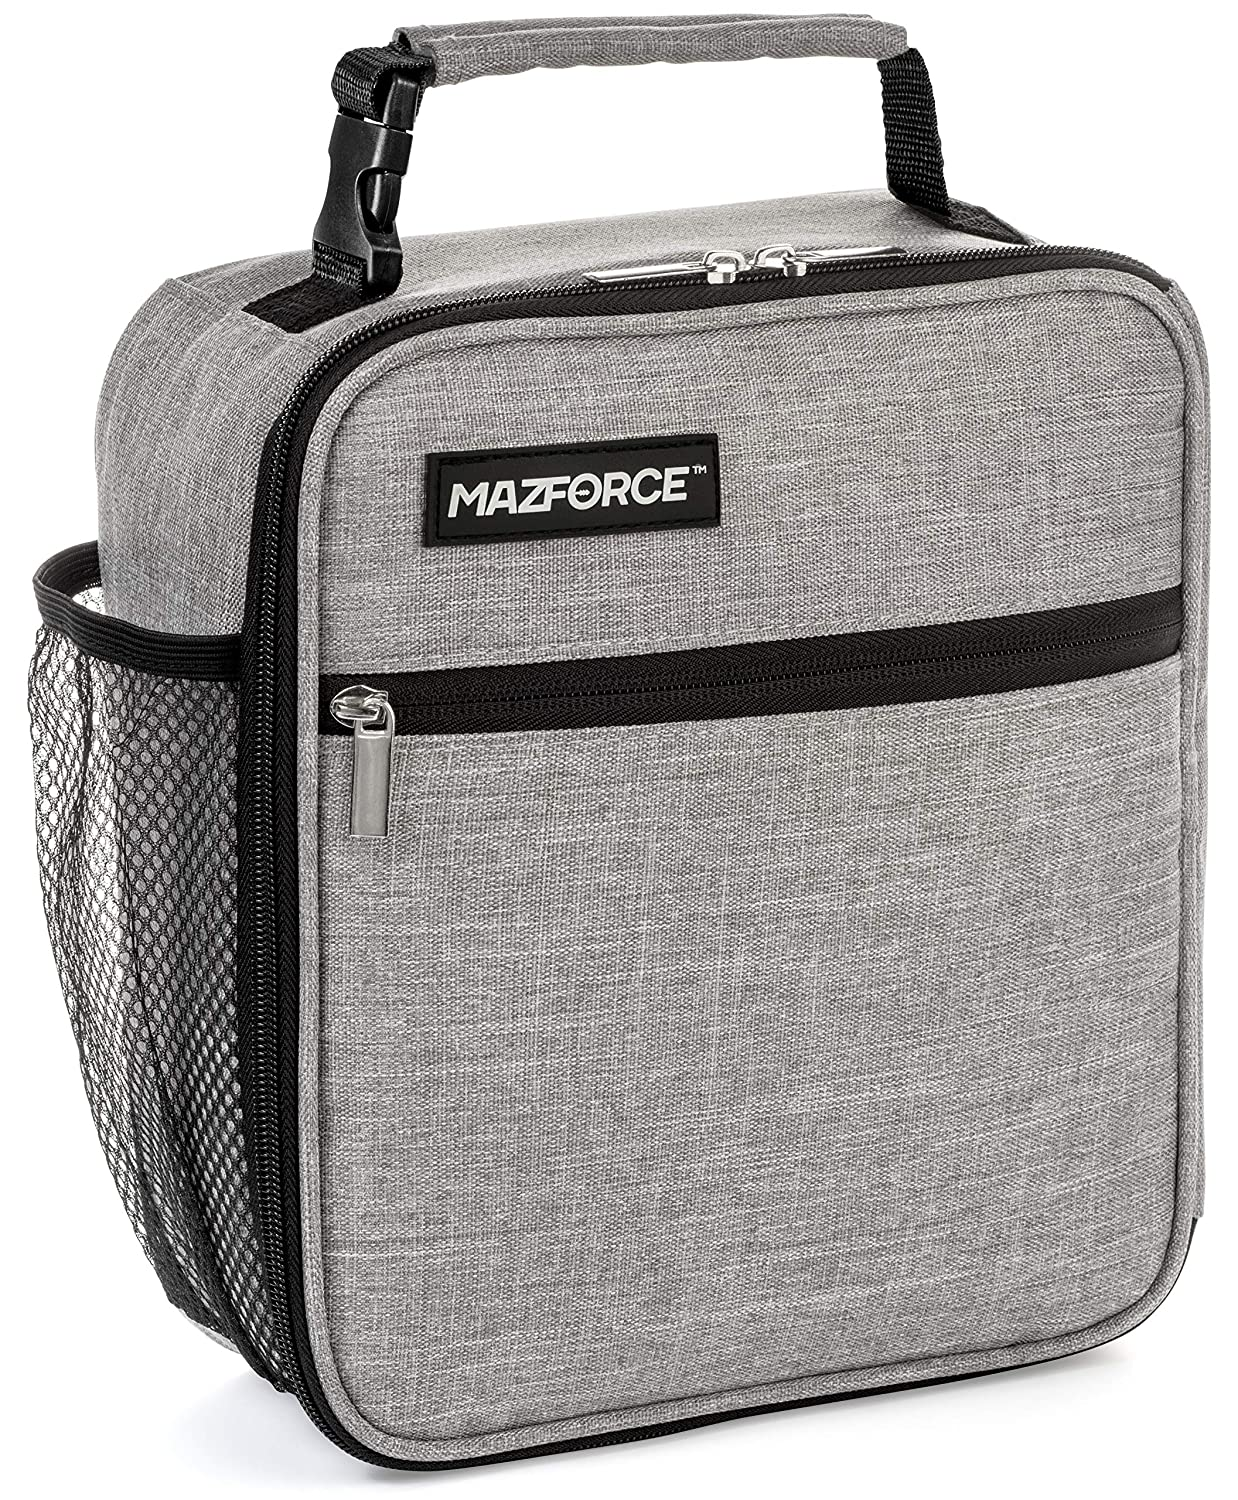 MAZFORCE Original Lunch Box Insulated Lunch Bag - Tough & Spacious Adult Lunchbox to Seize Your Day (Wolf Grey - Lunch Bags Designed in California for Men, Adults, Women) MF714928861